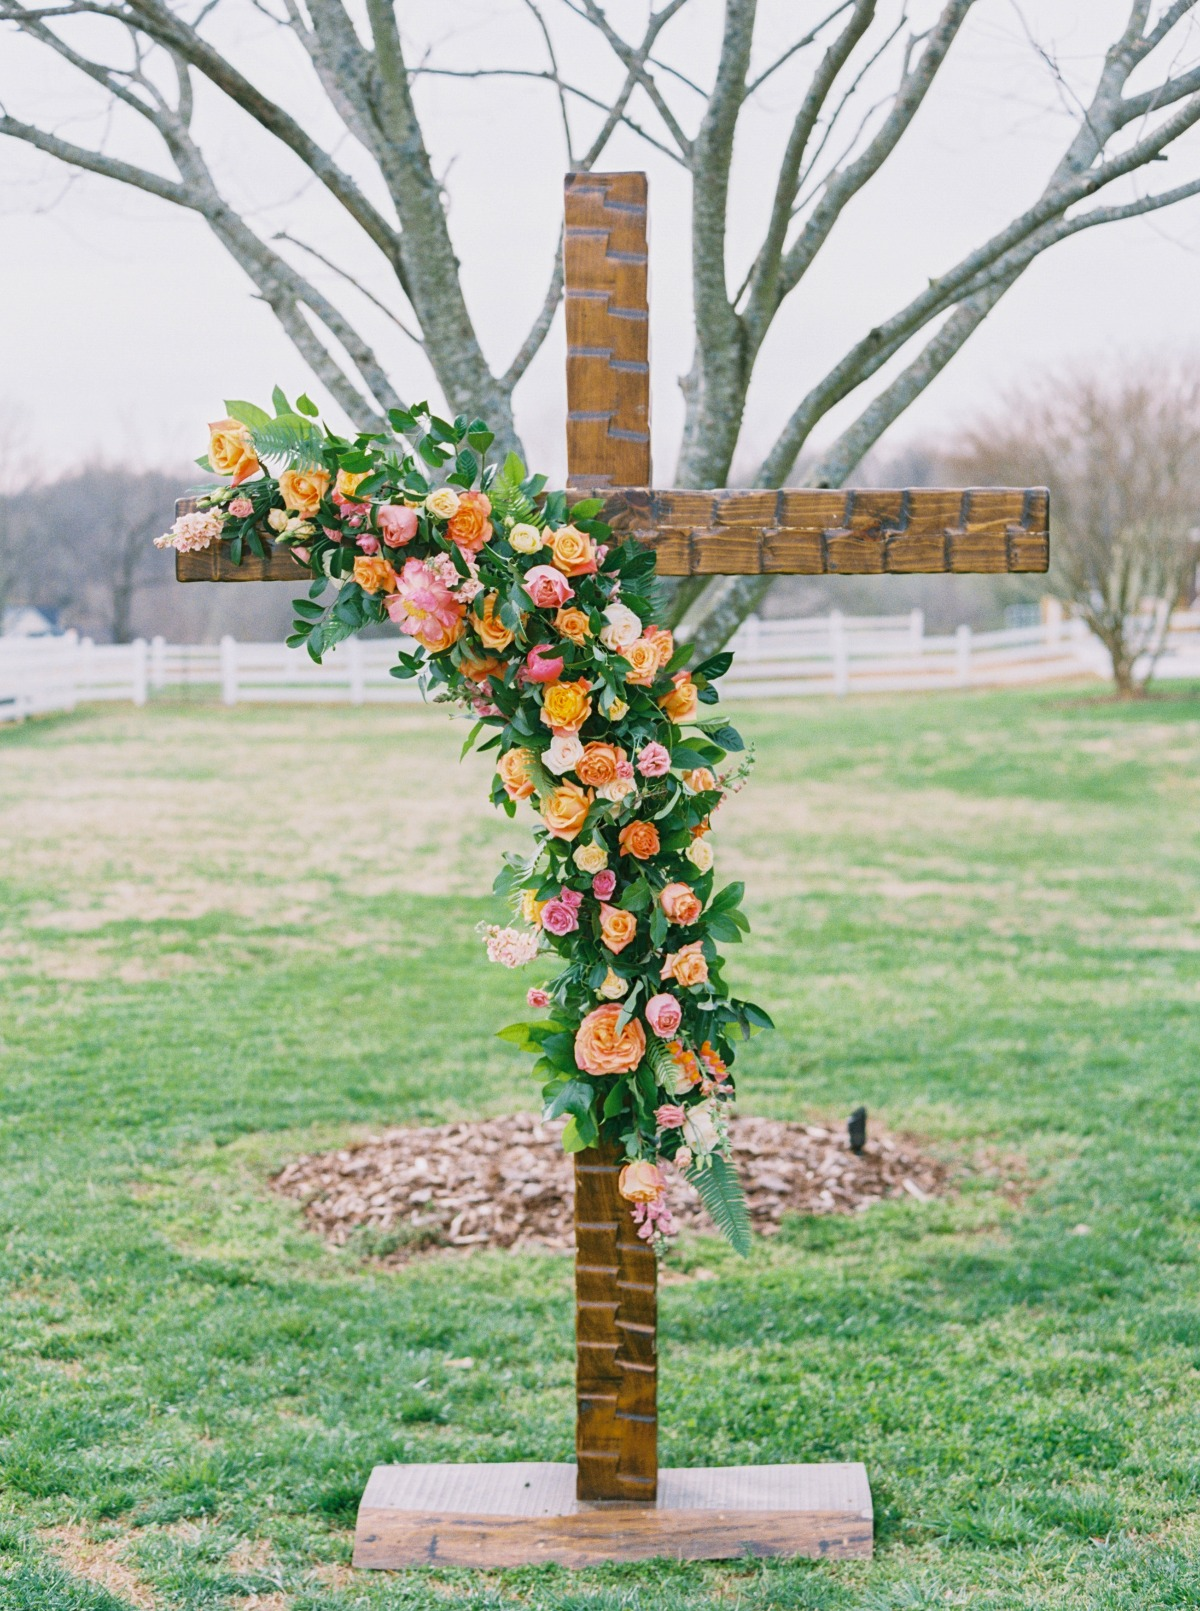 decorated cross